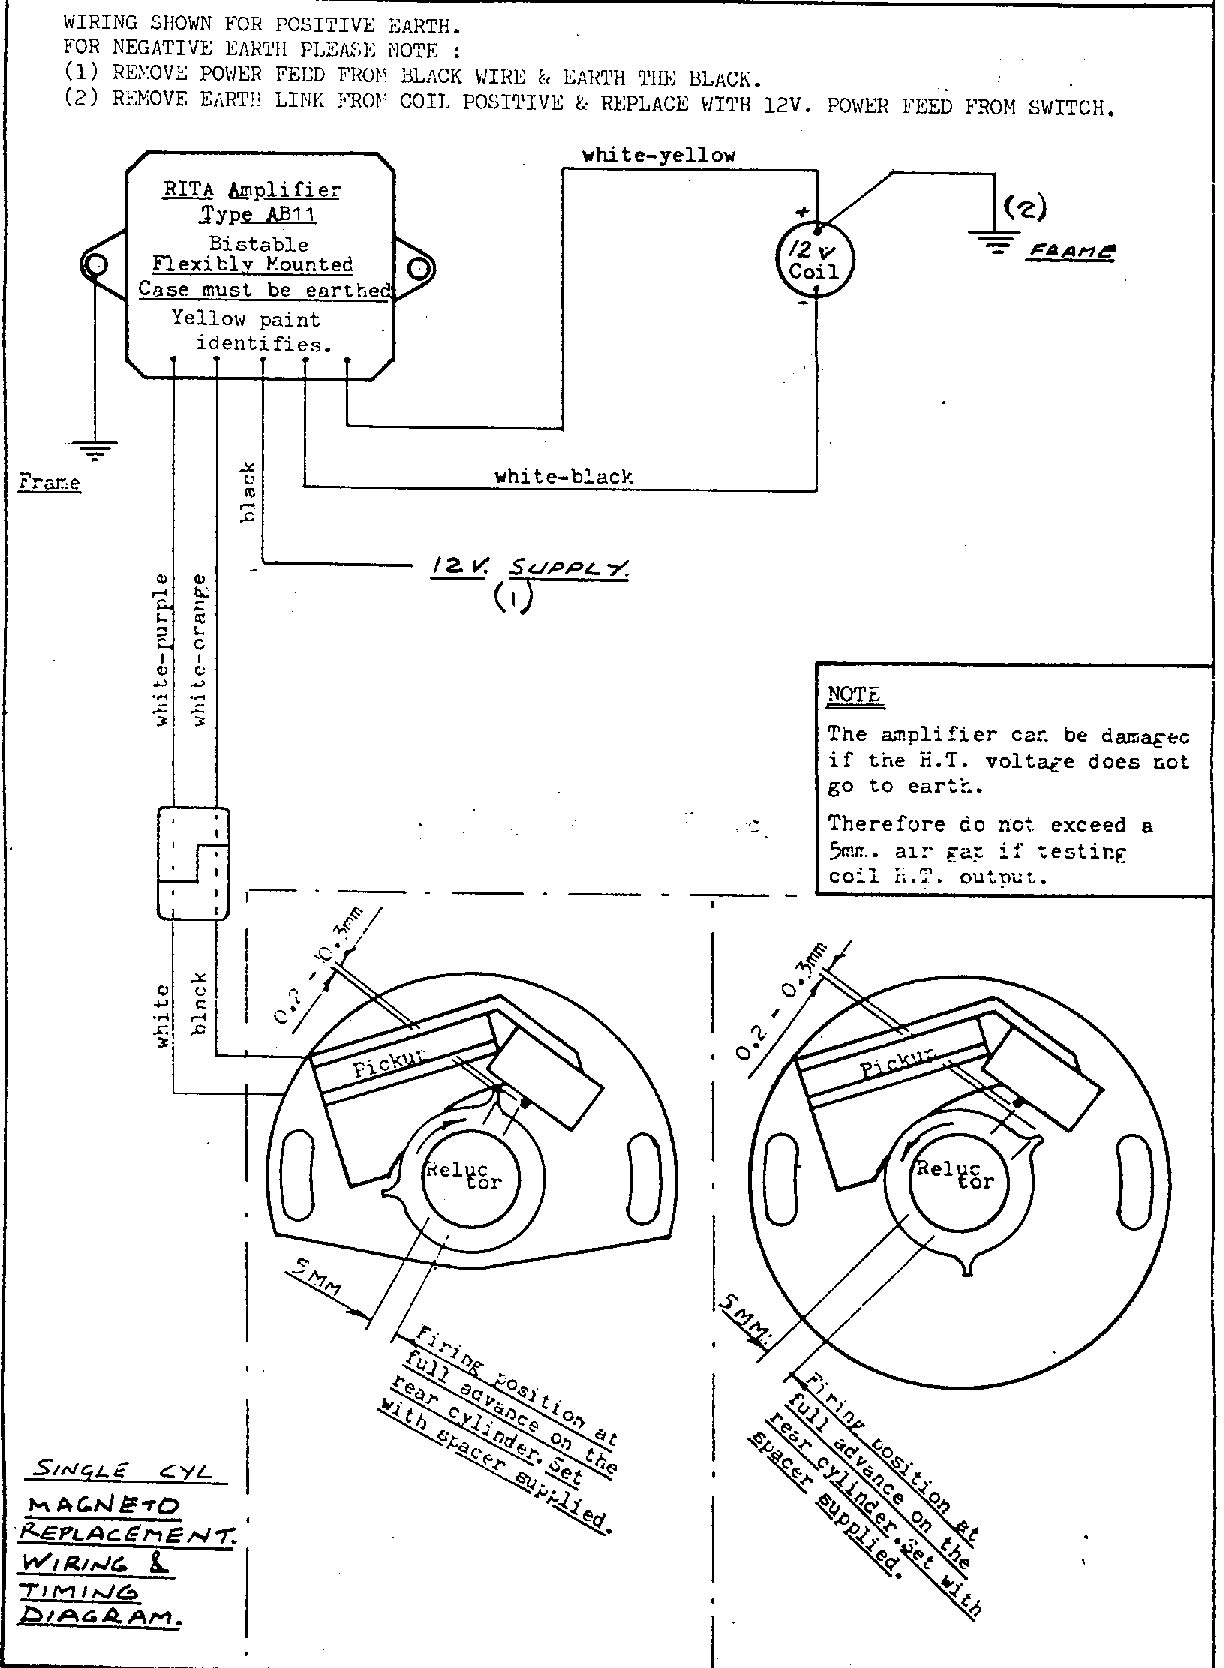 Euro Spares Electronic Components Dual Plug Wiring Diagram For Schematic Installing The Lr134 Rita Ignition Magneto Replacement Single Parallel Twin